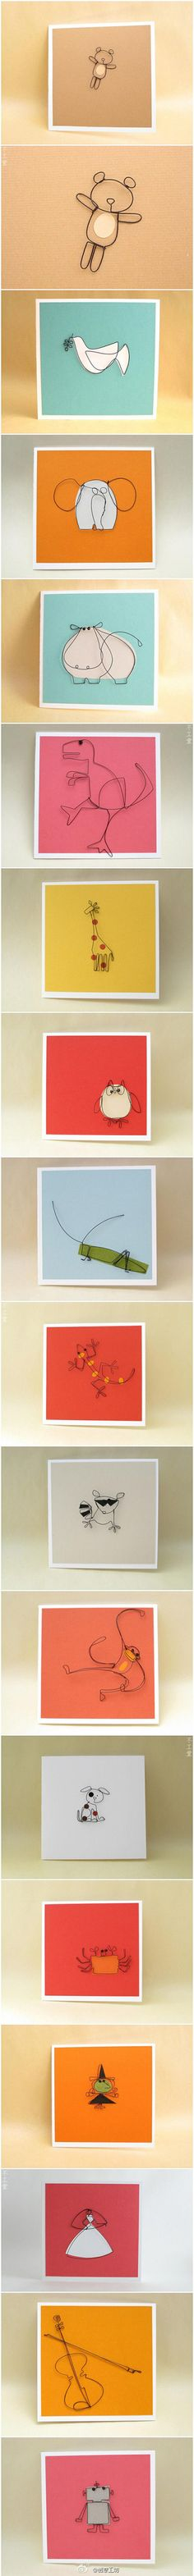 card - made by paper and Iron wire